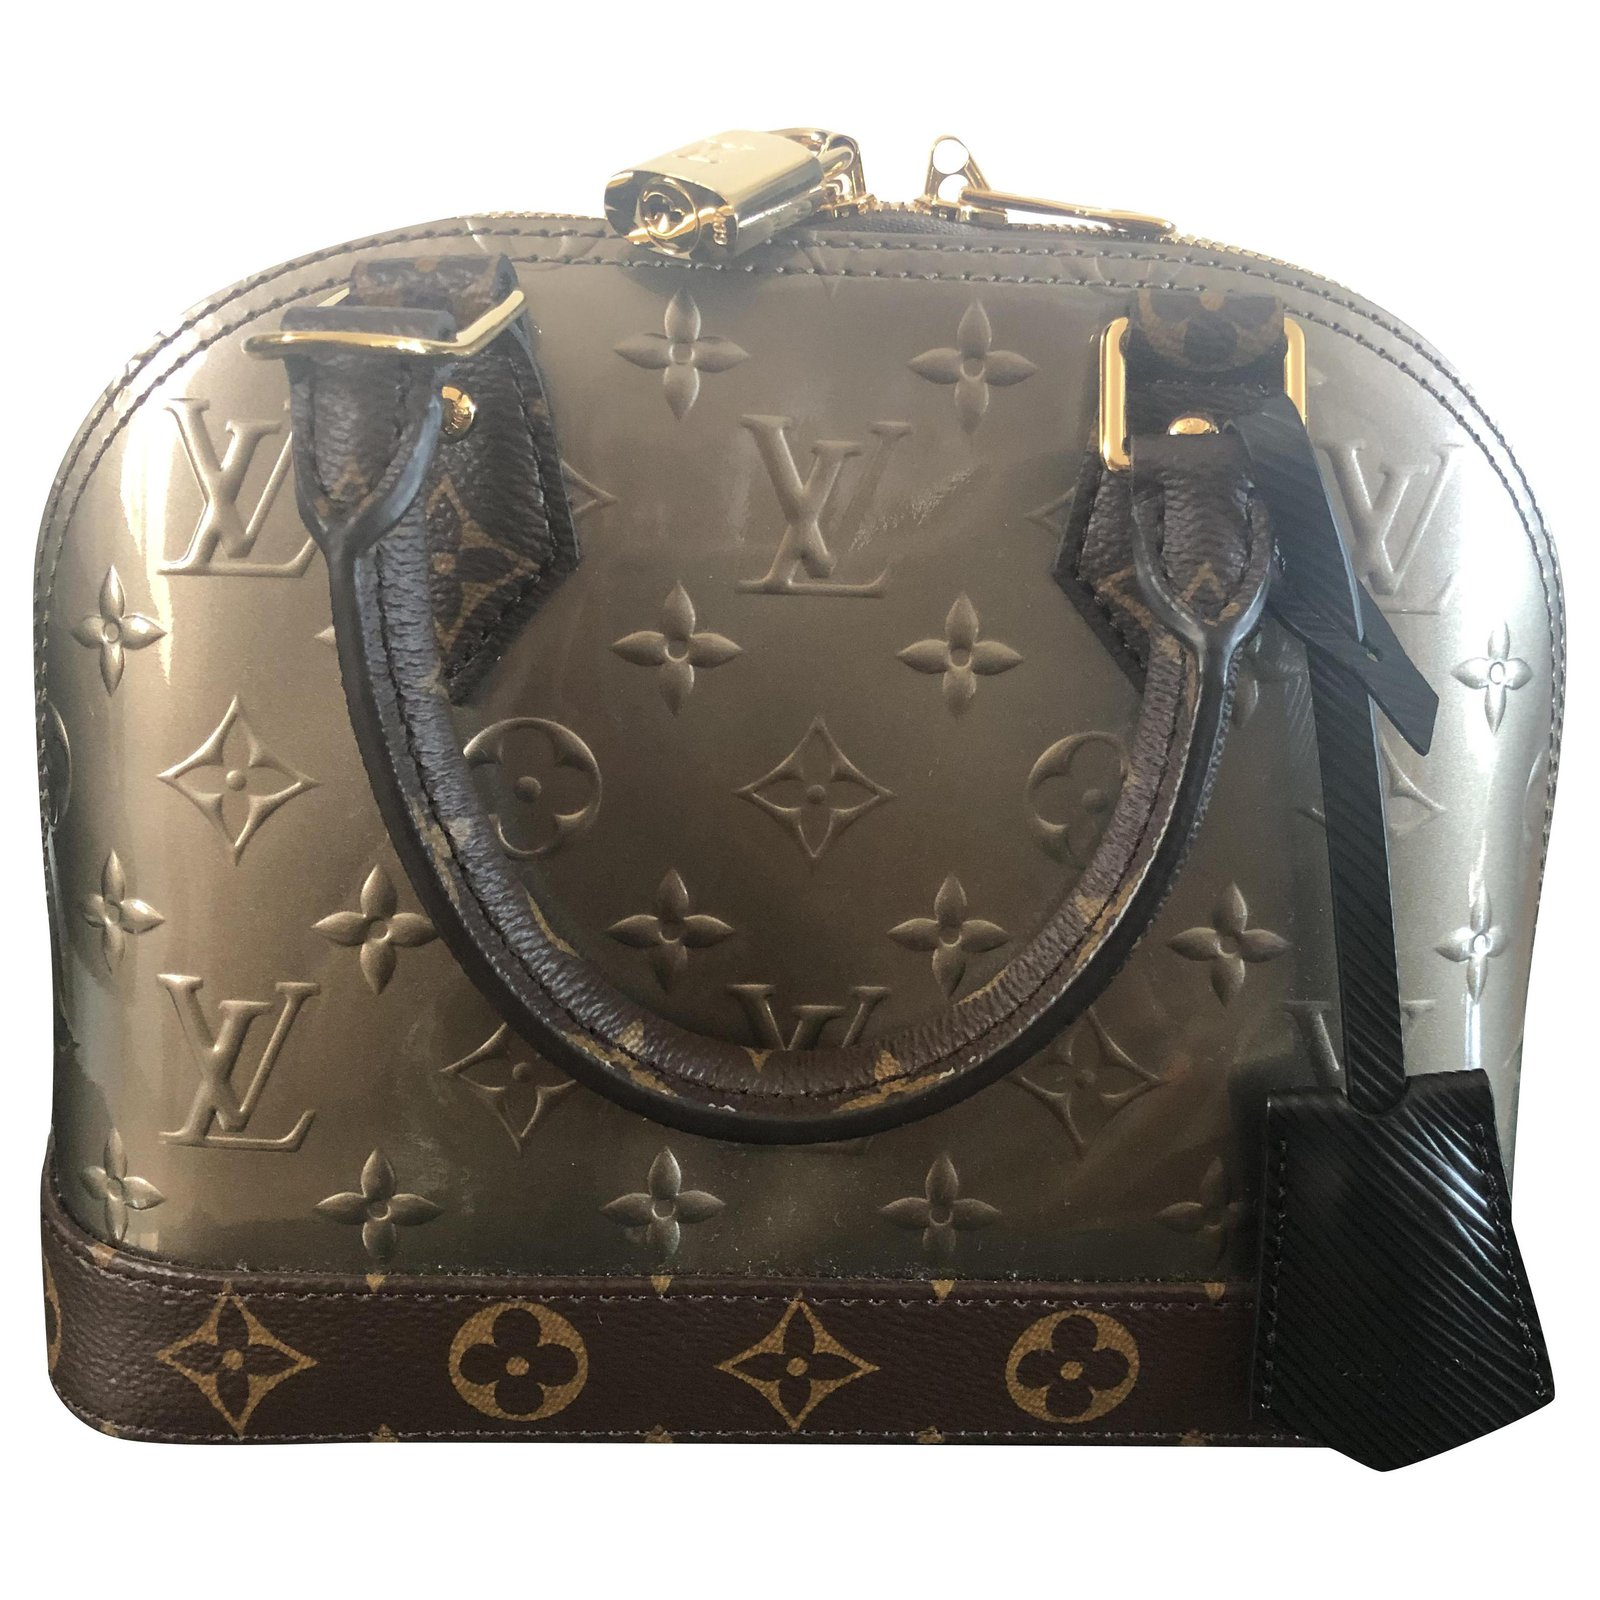 Louis Vuitton Alma Bb Limited Edition Handbags Patent Leather Brown Black Silvery Gold Hardware Ref 207594 Joli Closet